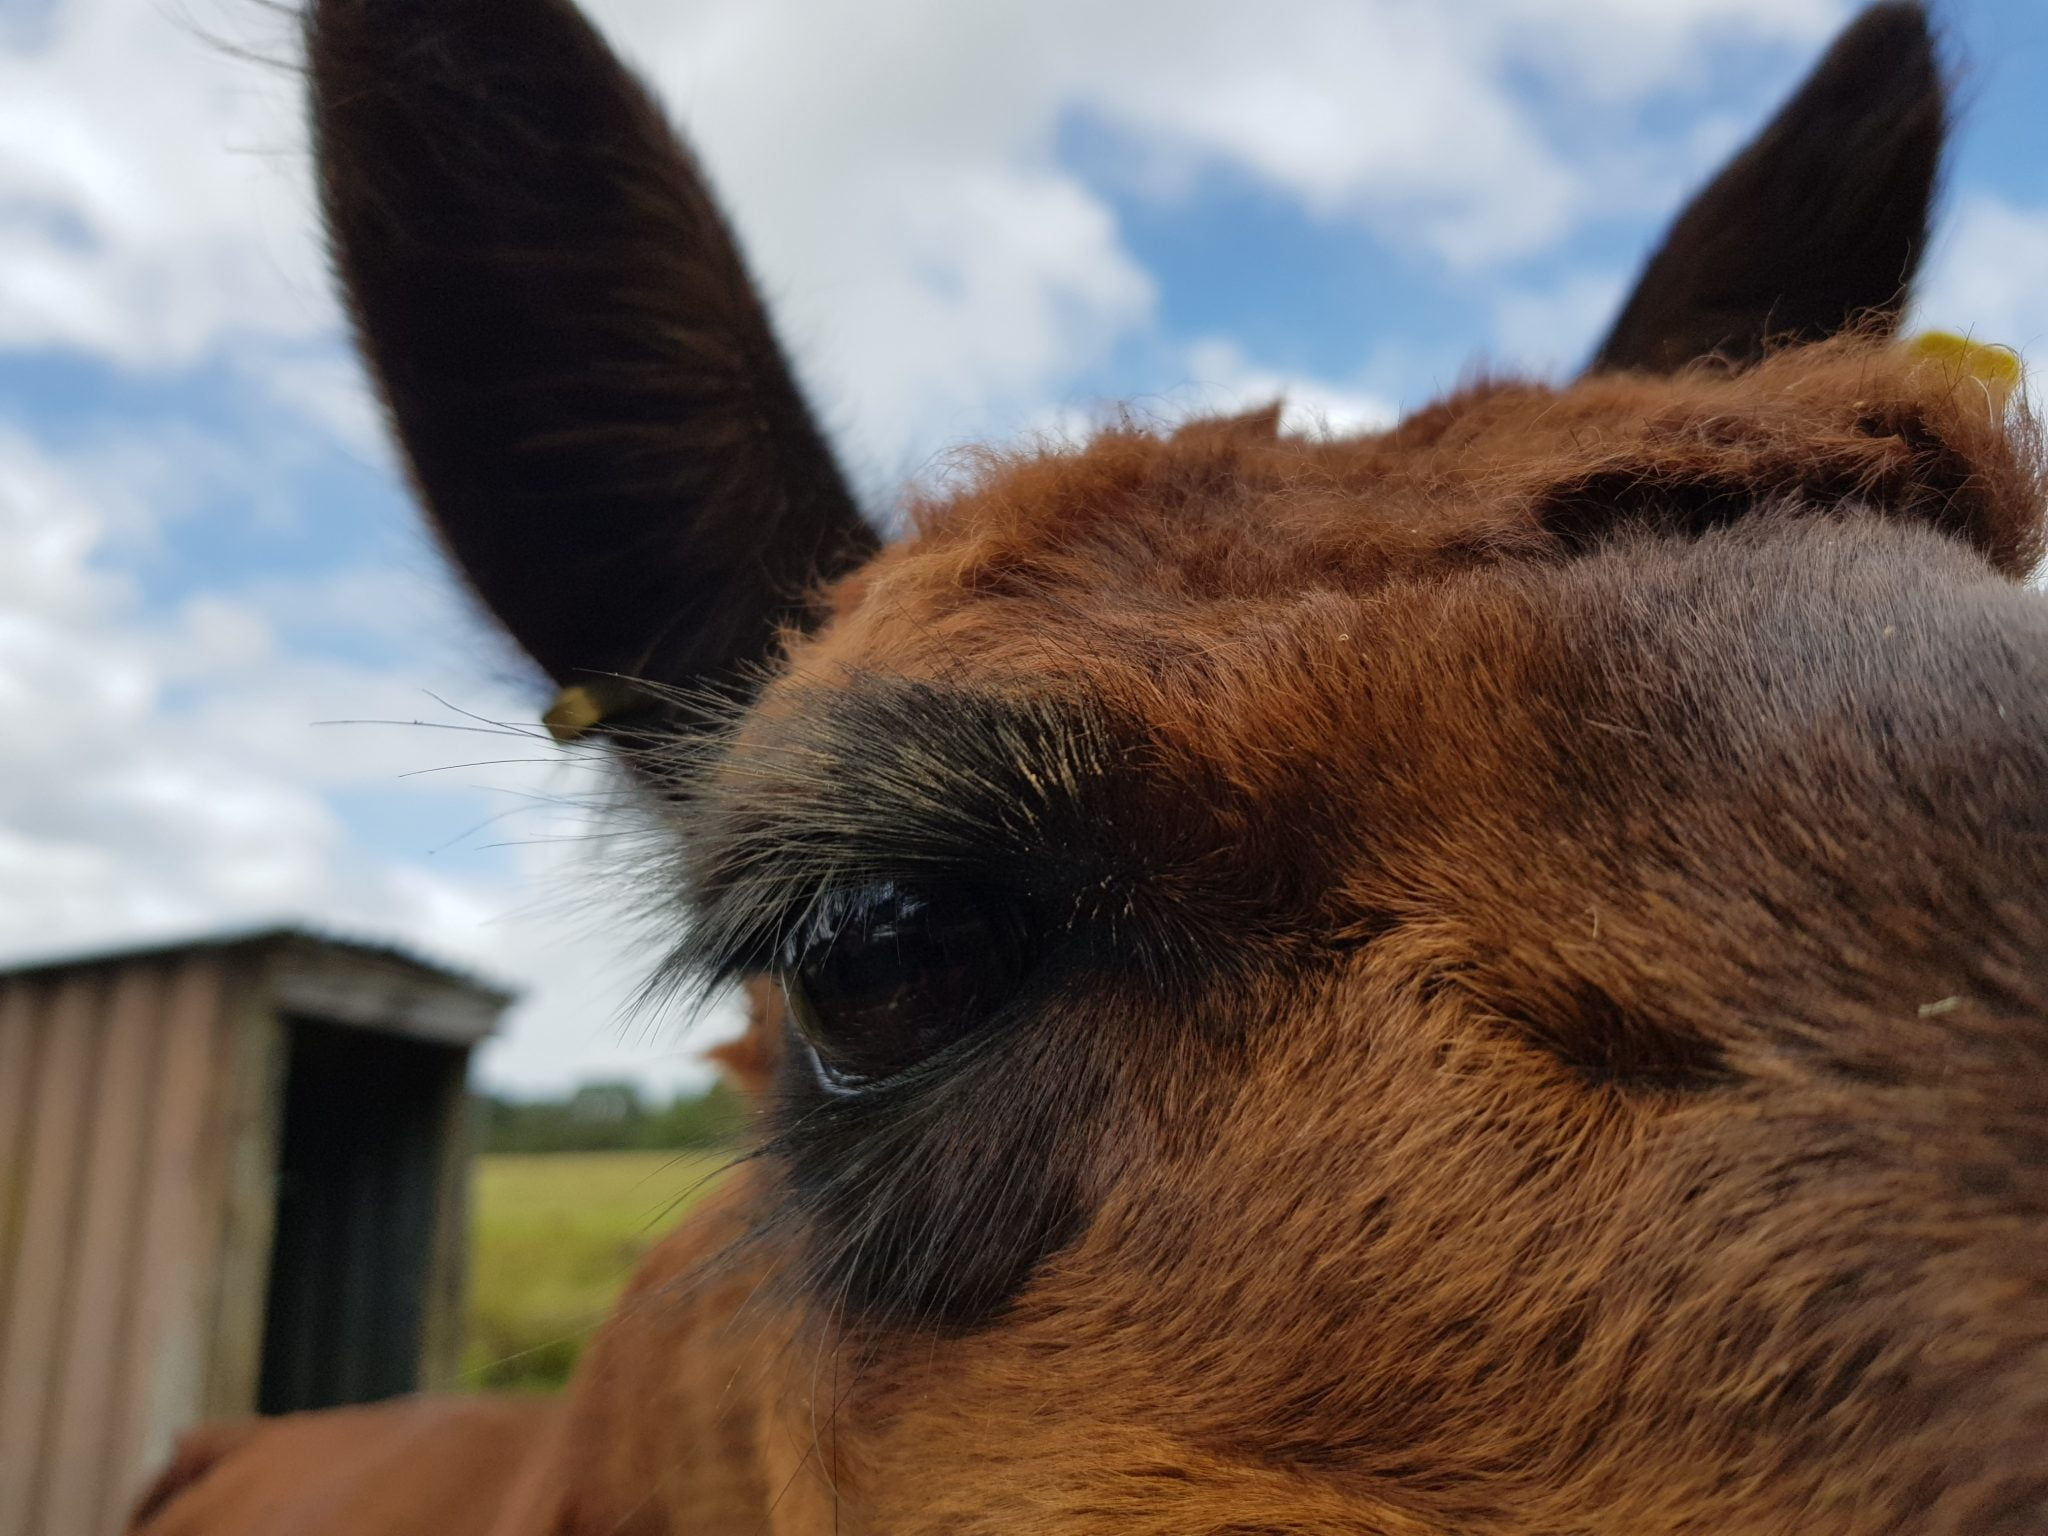 An alpaca eye - that's how close the alpca is